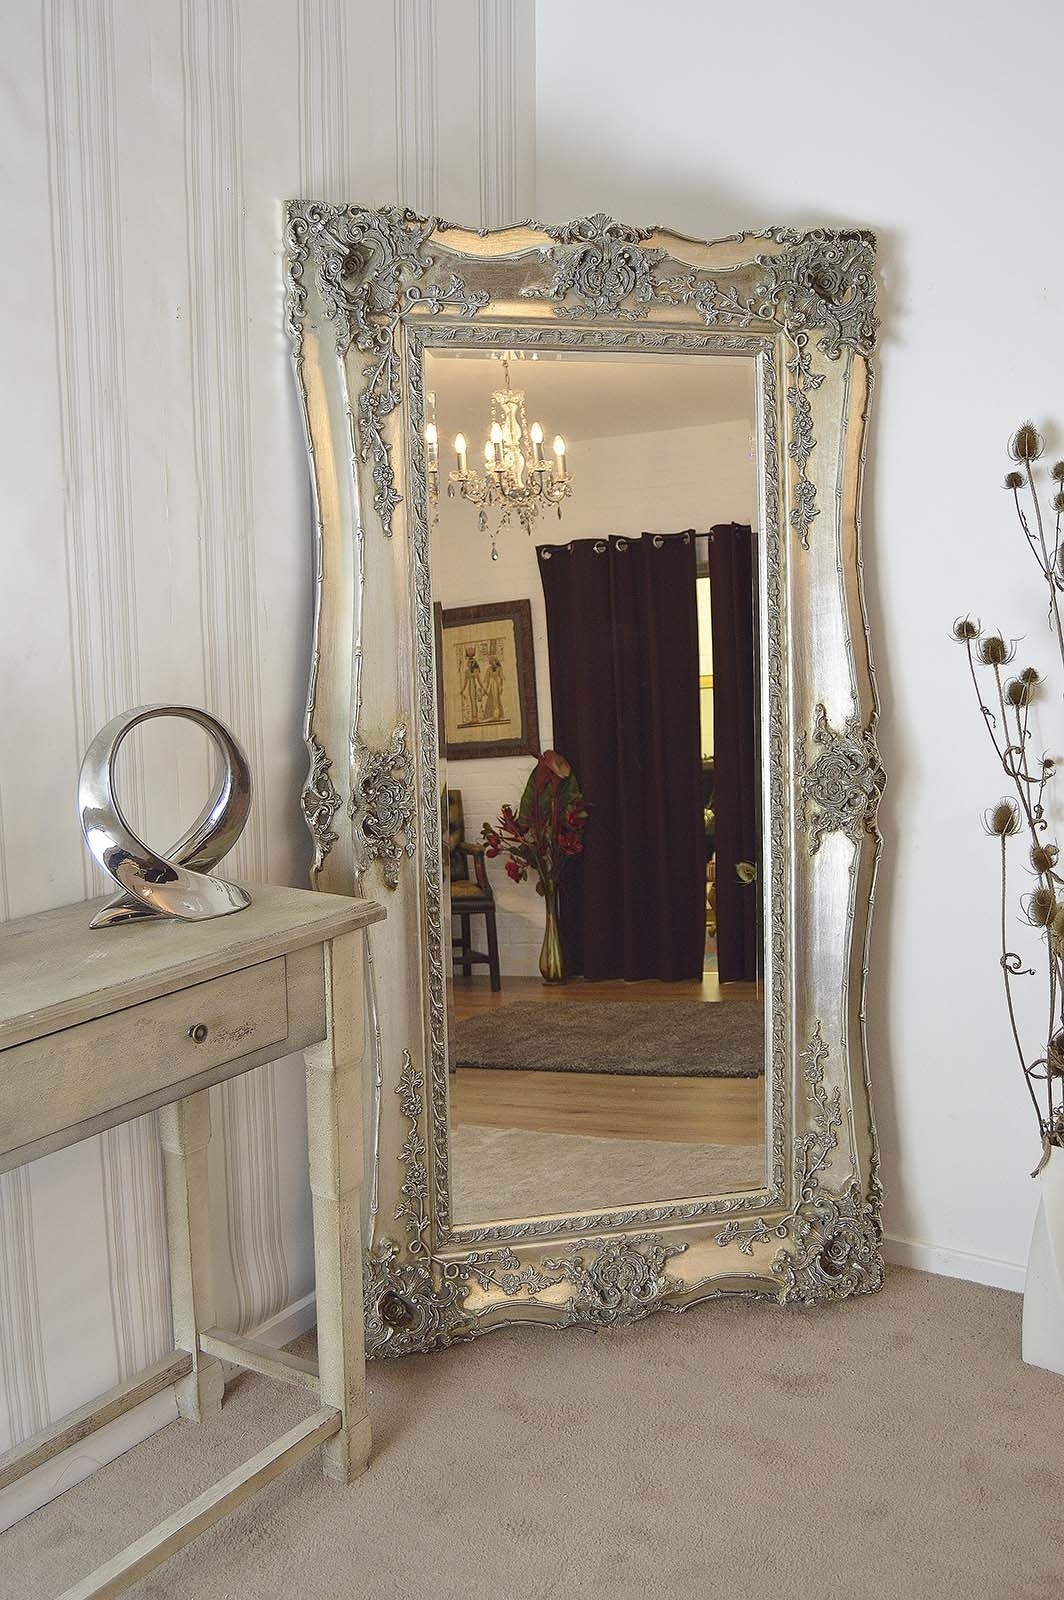 Bedroom Furniture Large Gold Mirror Free Standing Mirror Wooden Within Large Antique Wall Mirrors (Image 3 of 15)